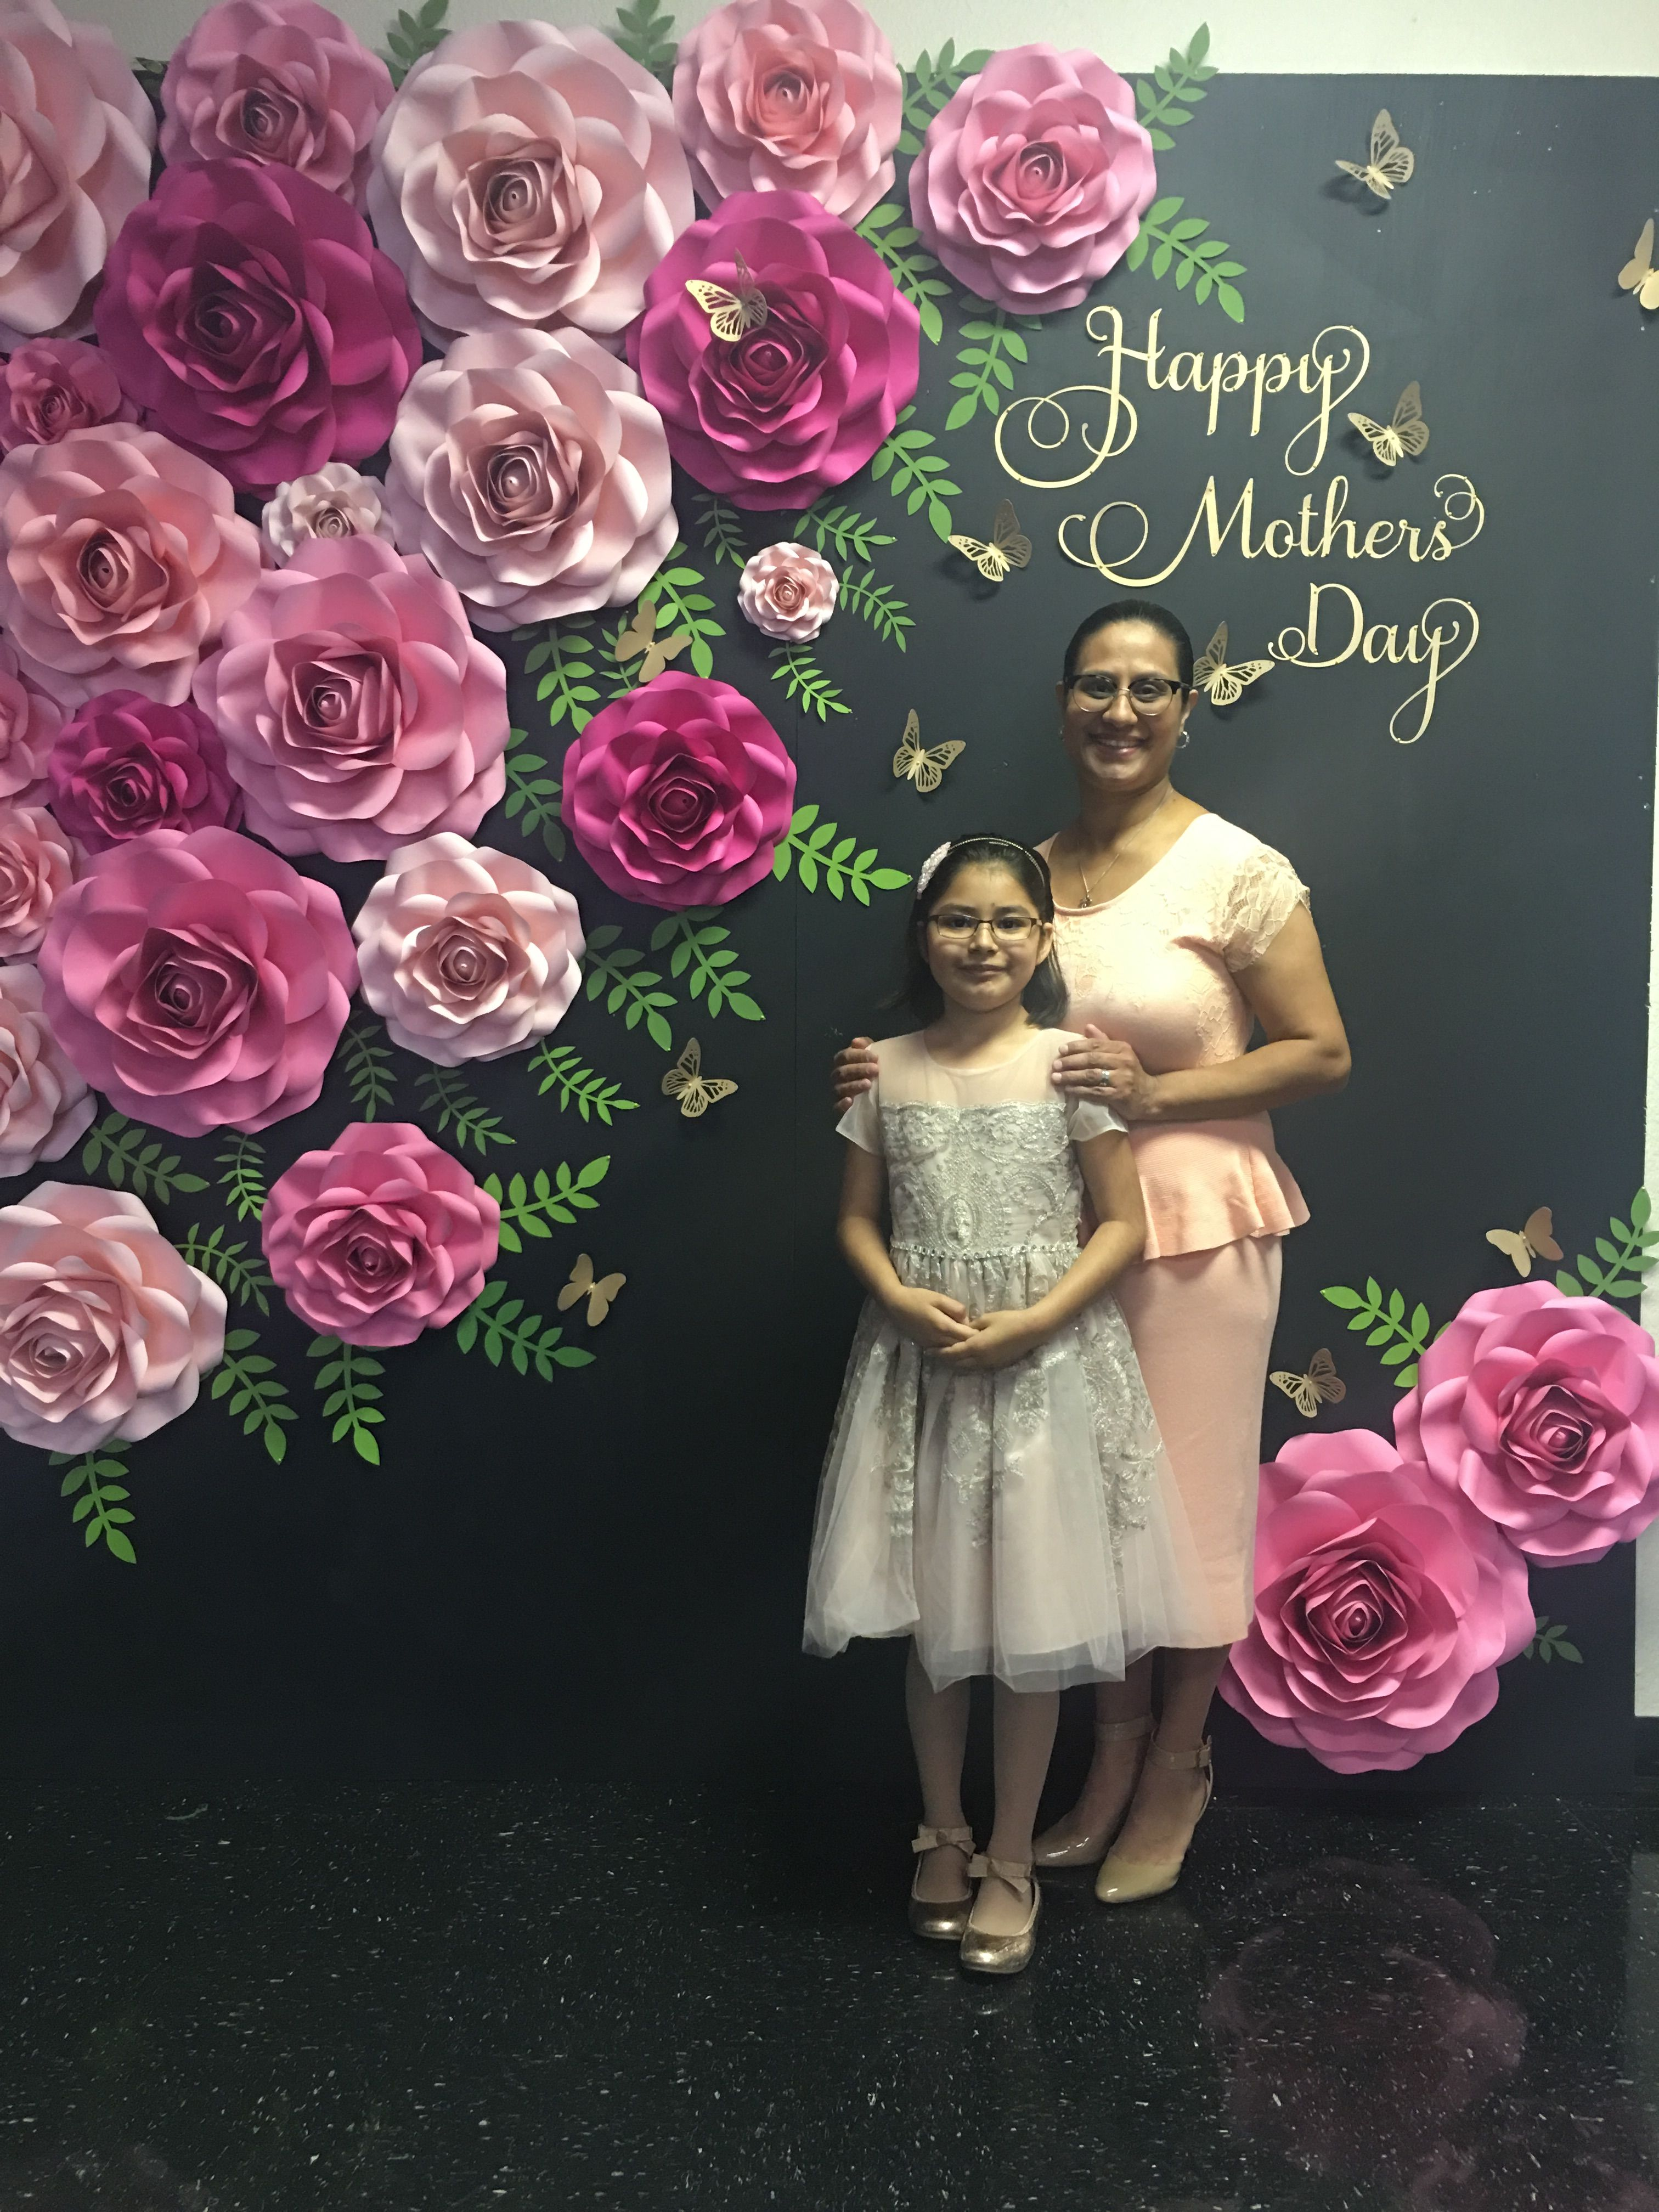 Mother S Day Backdrop By Carol S Creations Mothers Day Decor Paper Flower Wall Wedding Mothers Day Crafts